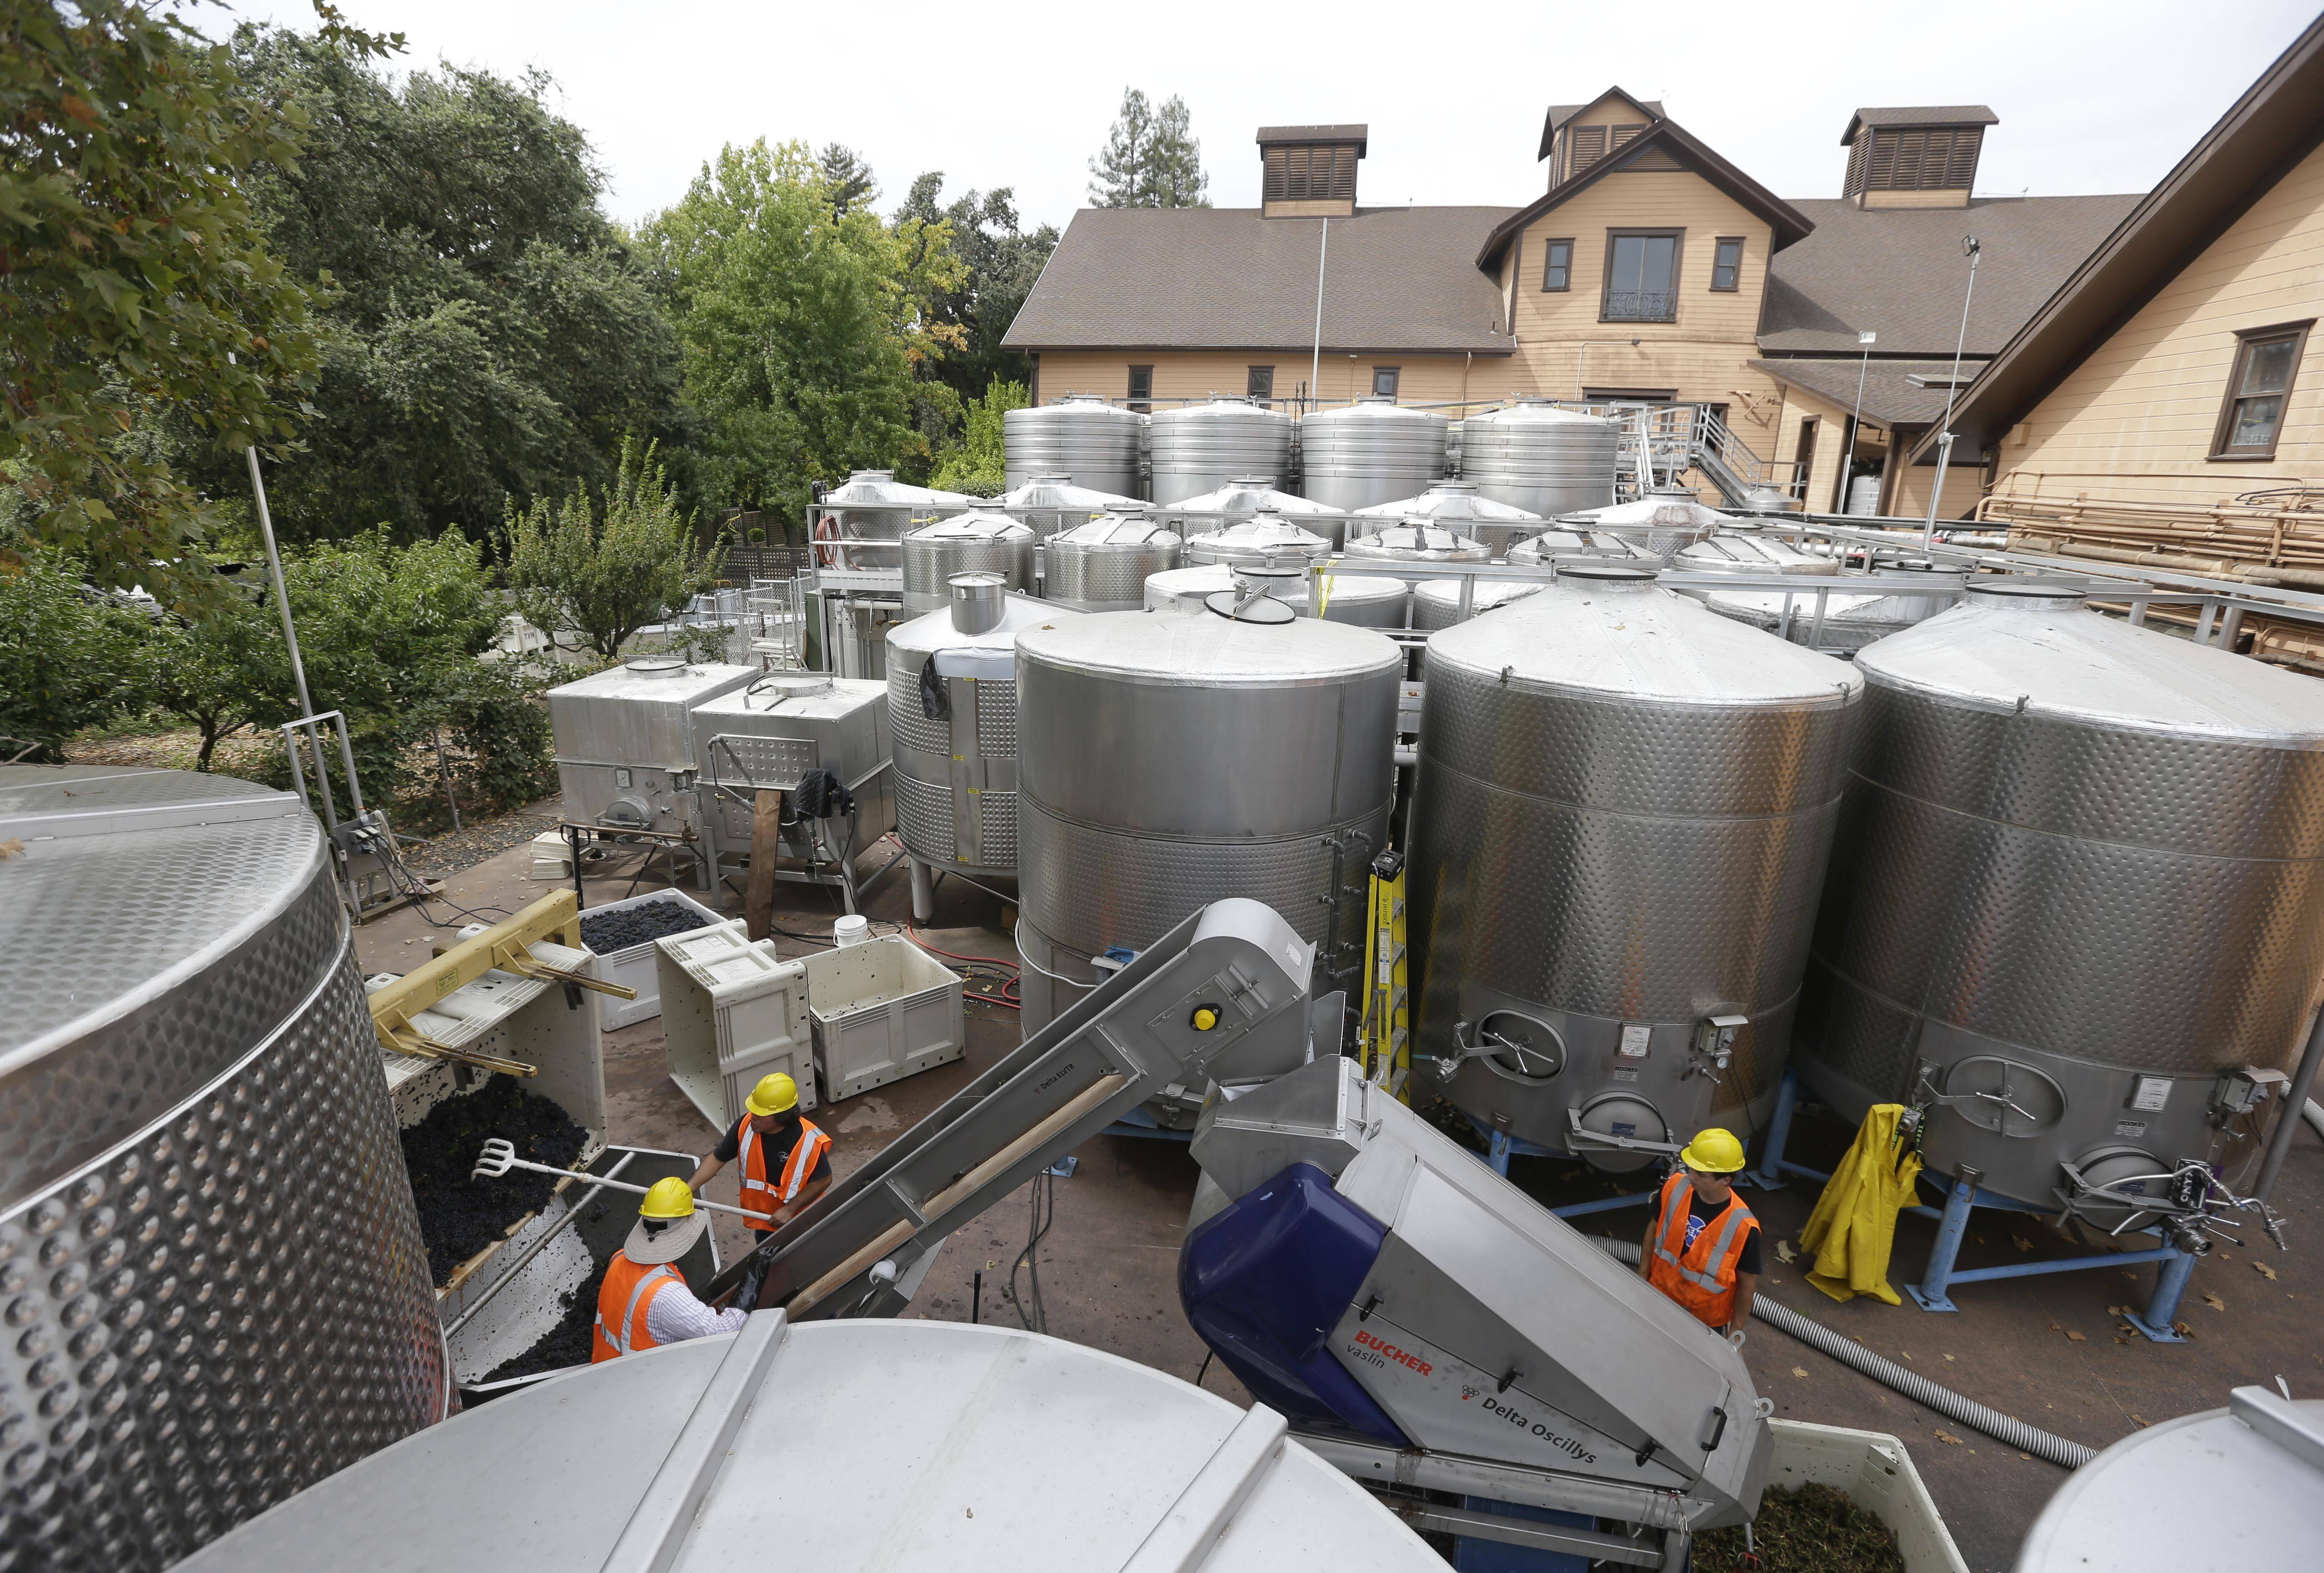 Workers sort Pinot Noir grapes Friday with the earthquake damaged historic winery building dating from 1886 in the background at Trefethen Family Vineyards in Napa, Calif. Harvest resumed at the winery on Friday in addition to the arrival of crews to shore up the leaning historic building.